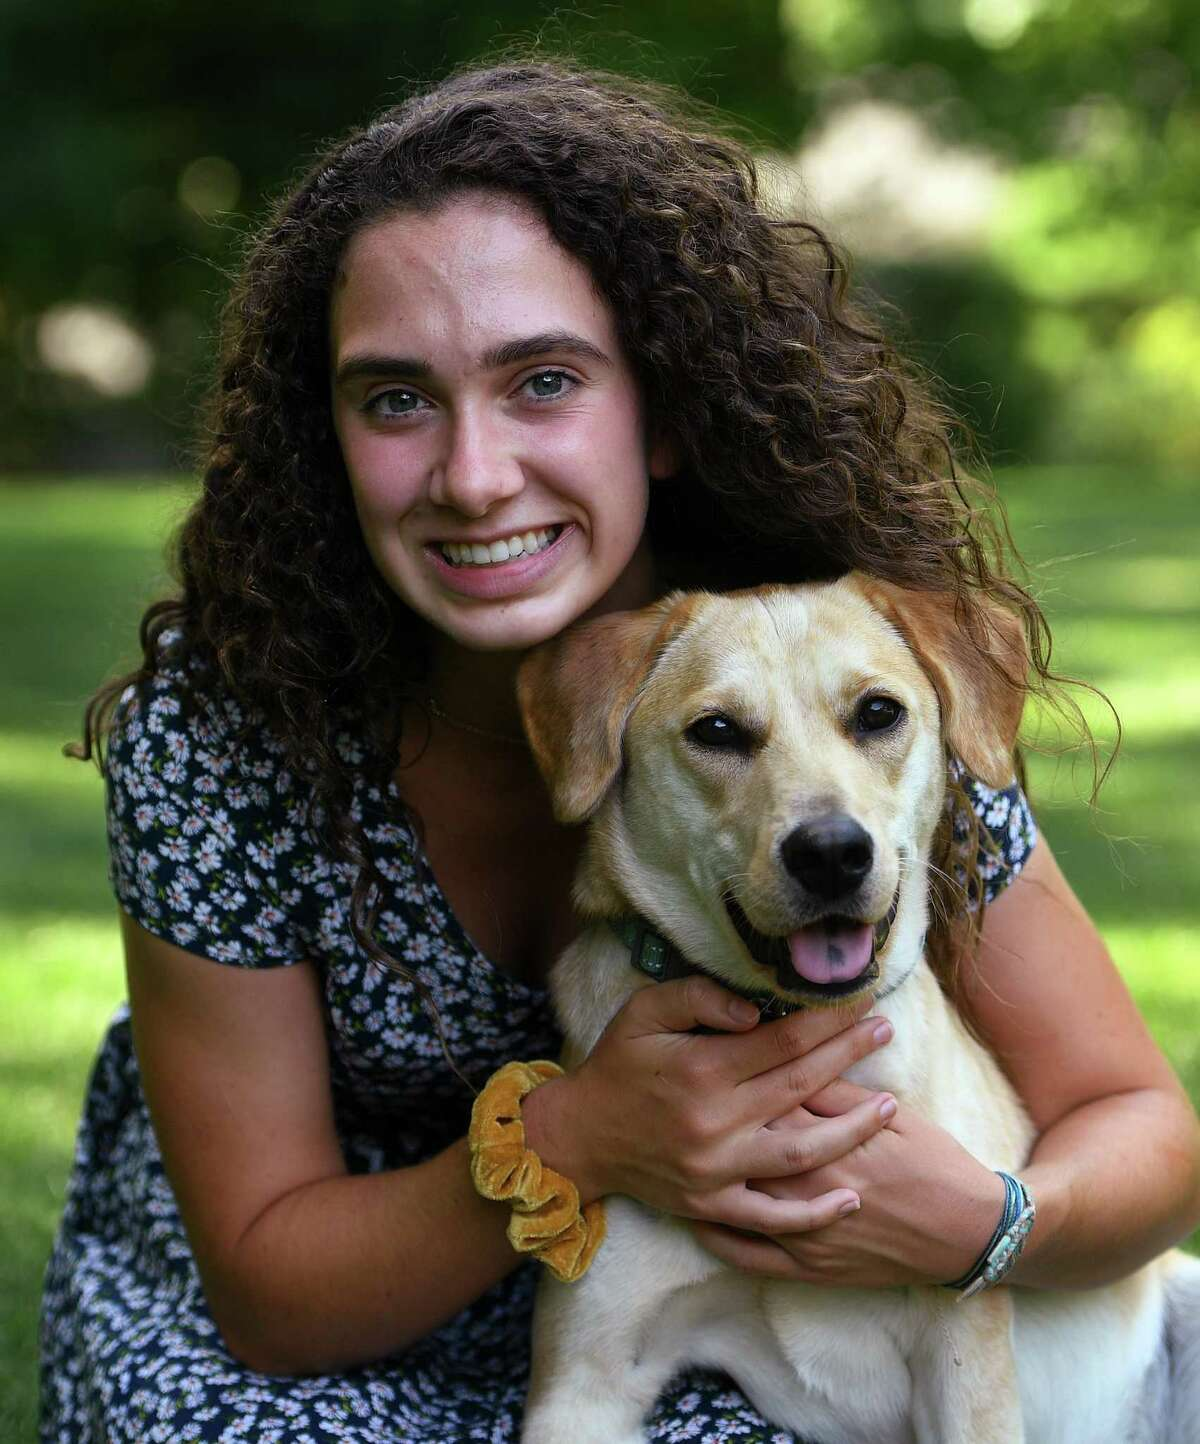 Kevin M. Eidt Memorial Scholarship winner and Norwalk High grad Libby Christinat with her dog, Avery, in Norwalk on Monday.